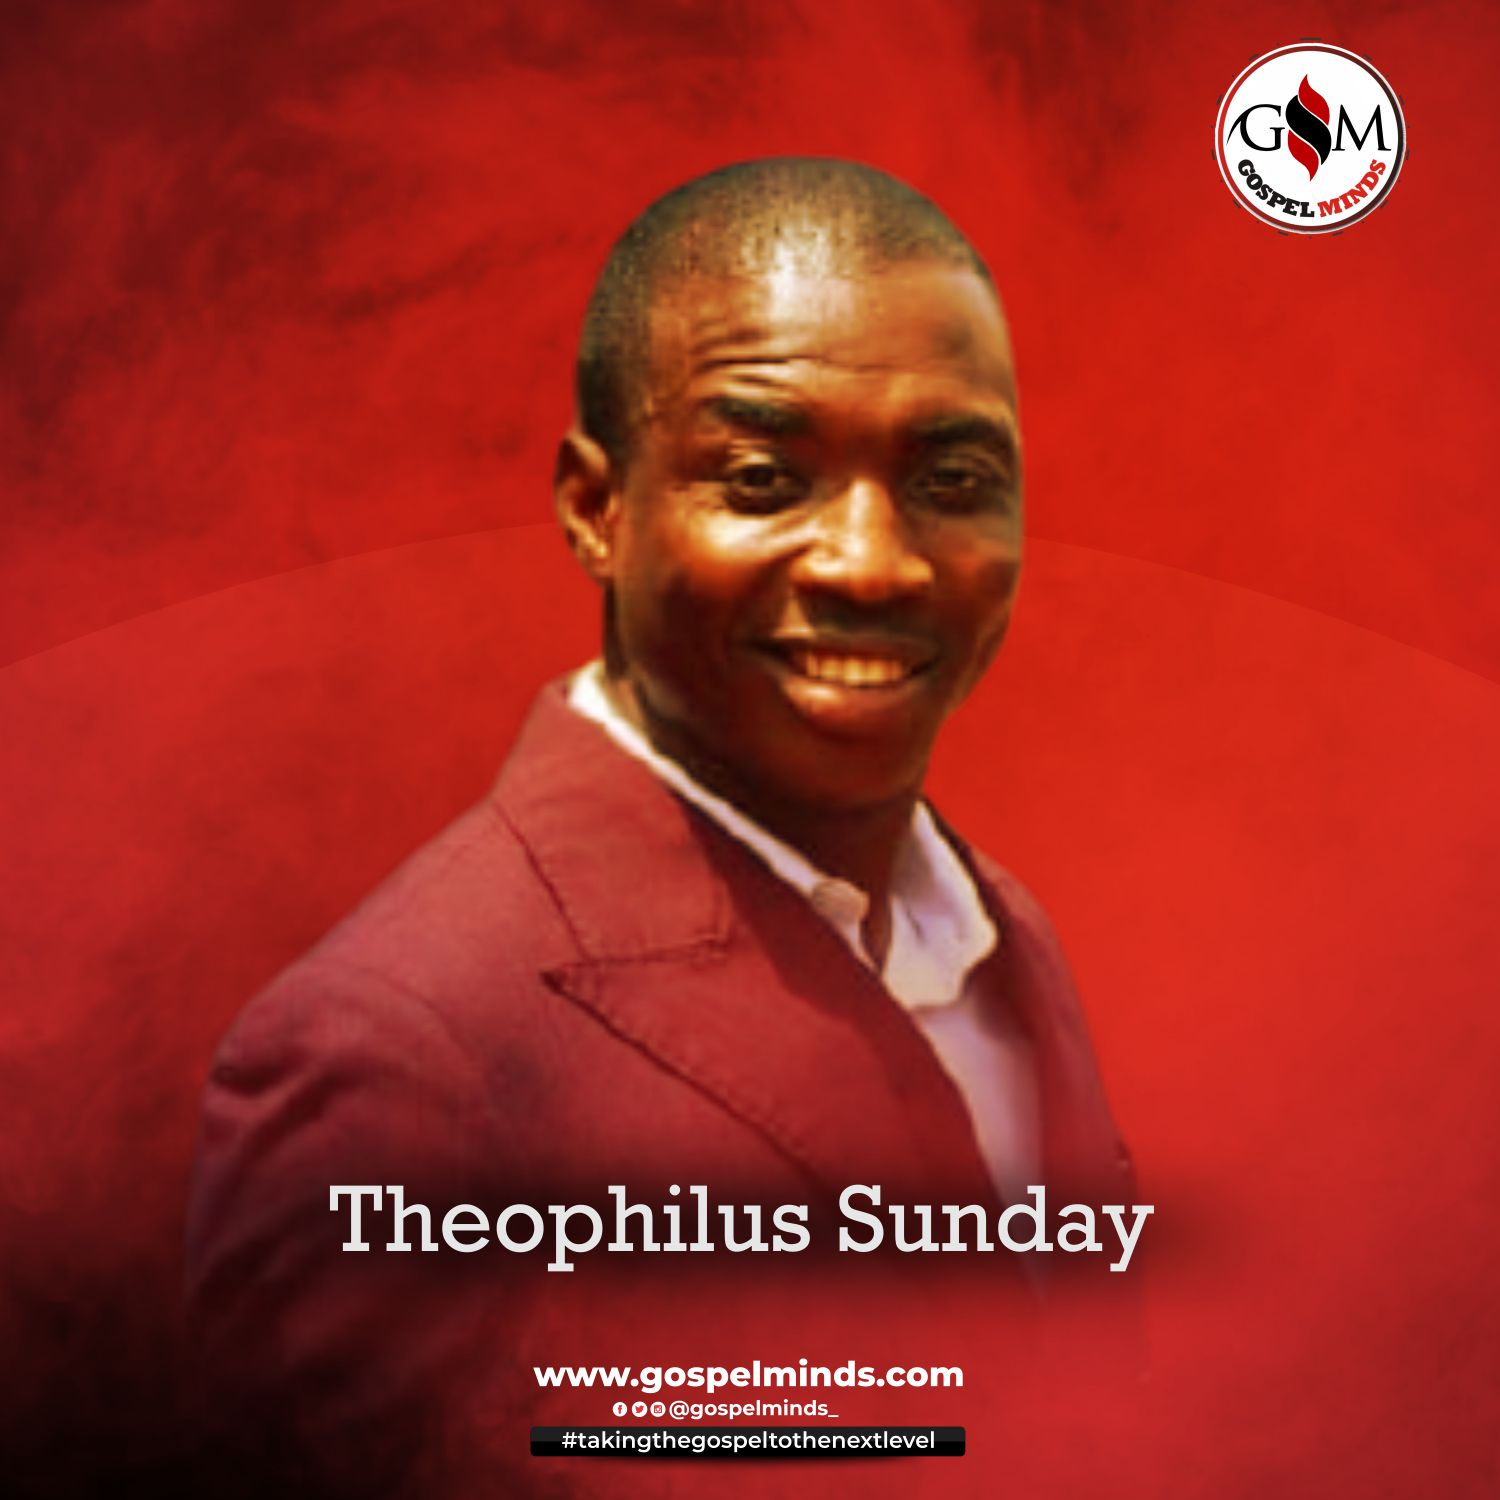 For Your Glory By Theophilus Sunday